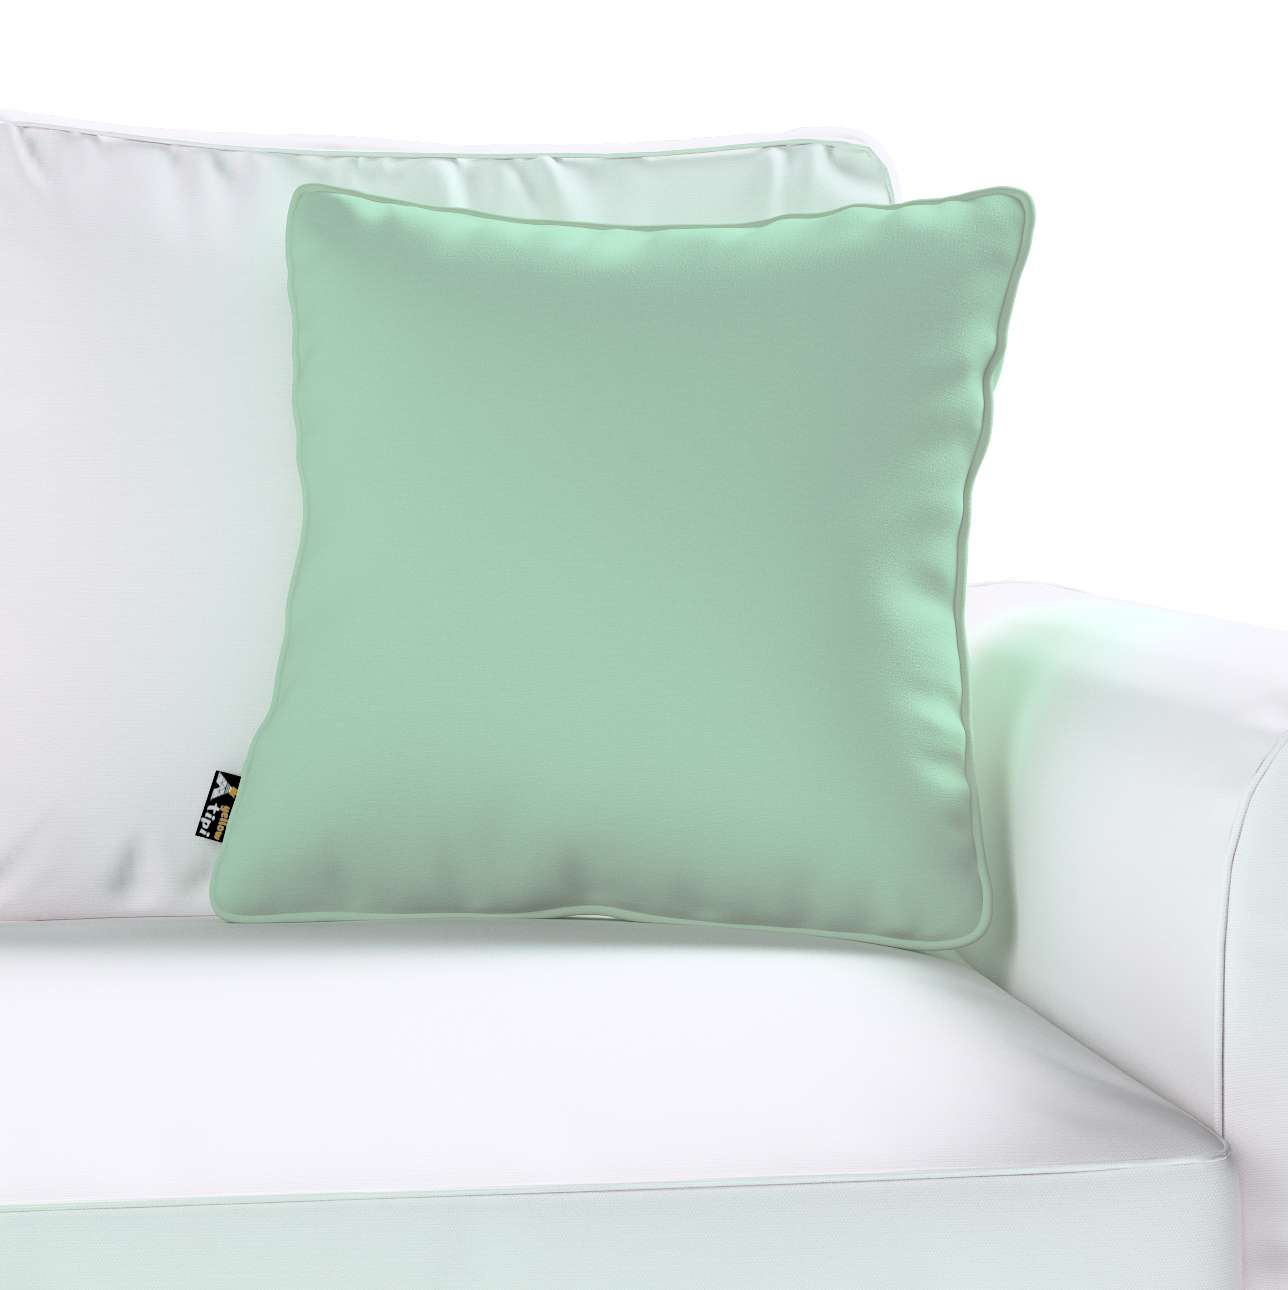 Lola piped cushion cover in collection Happiness, fabric: 133-61